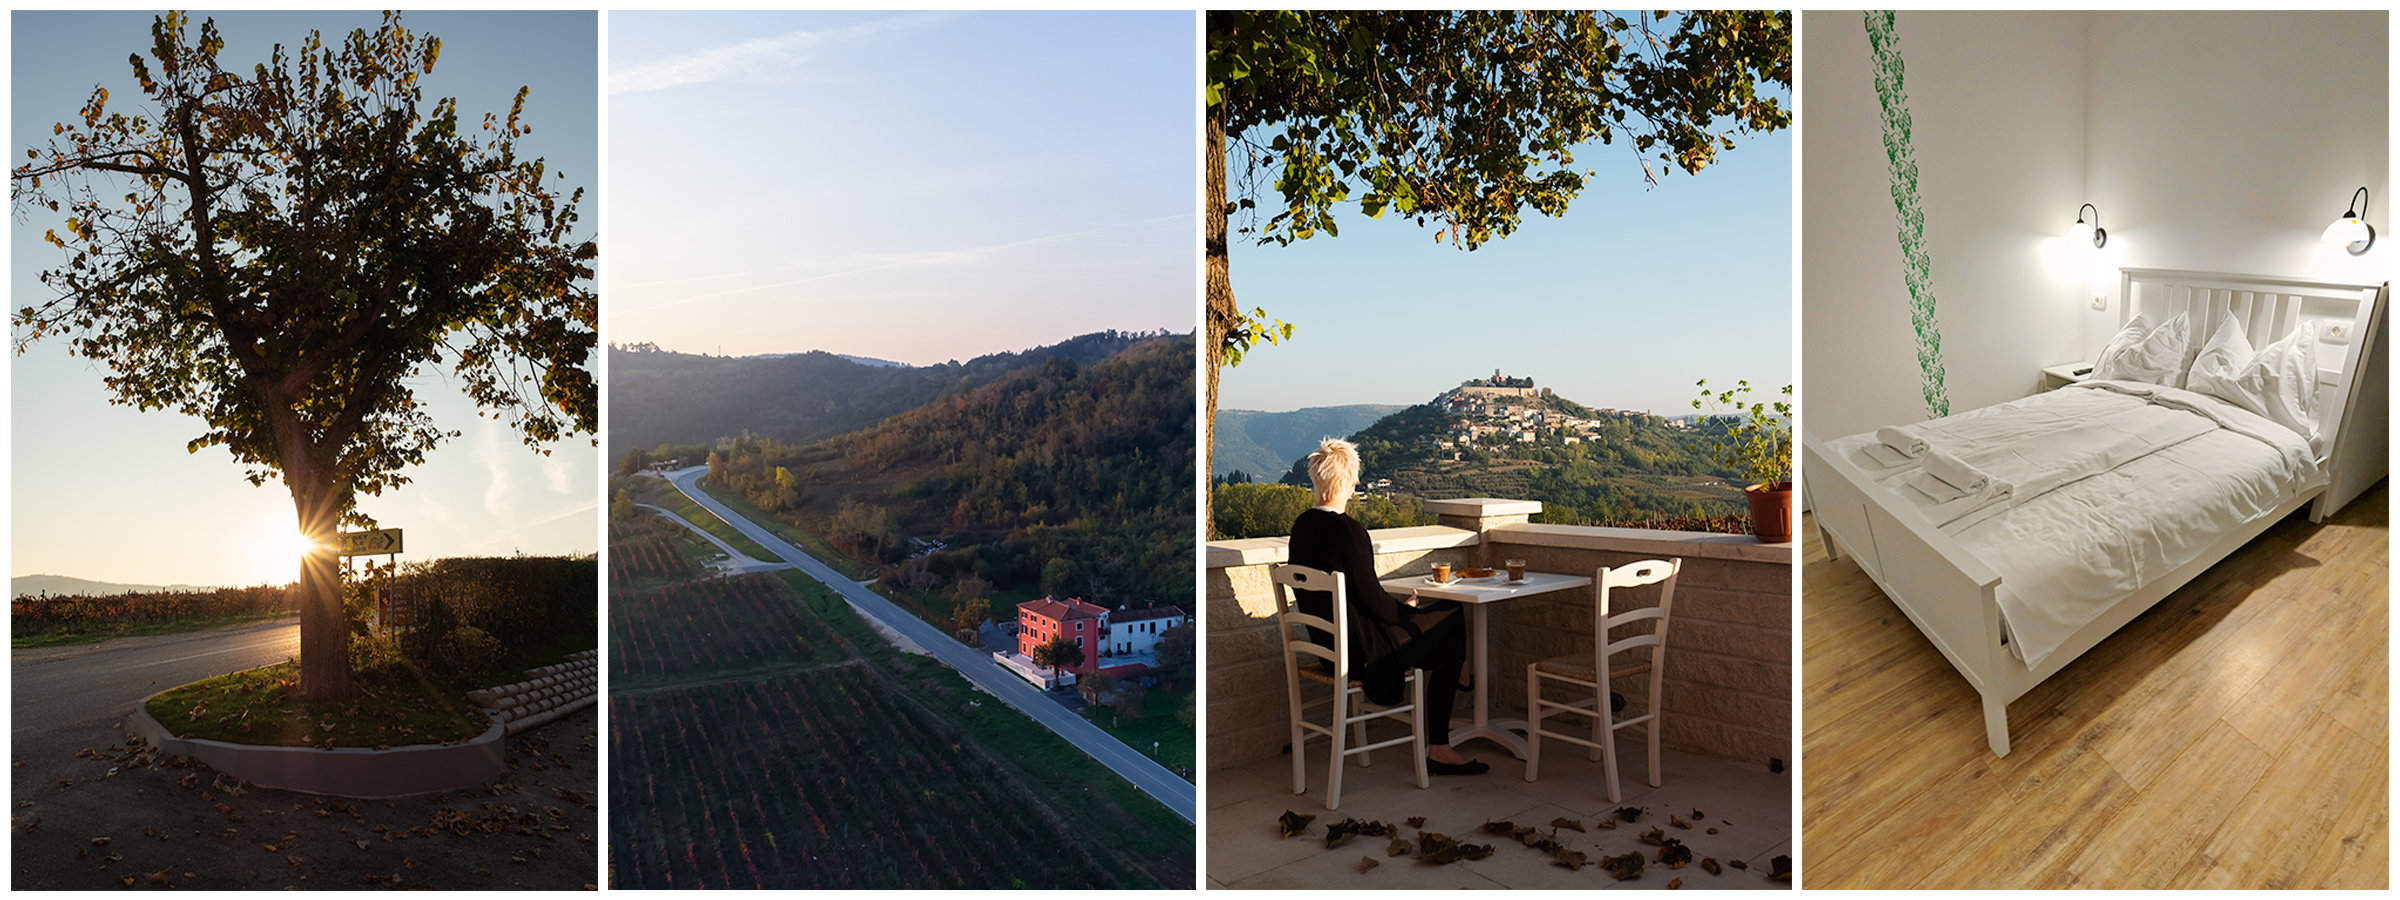 Casa Rossa , aka the Pink house sits just outside the main town and has a beautiful view of it!